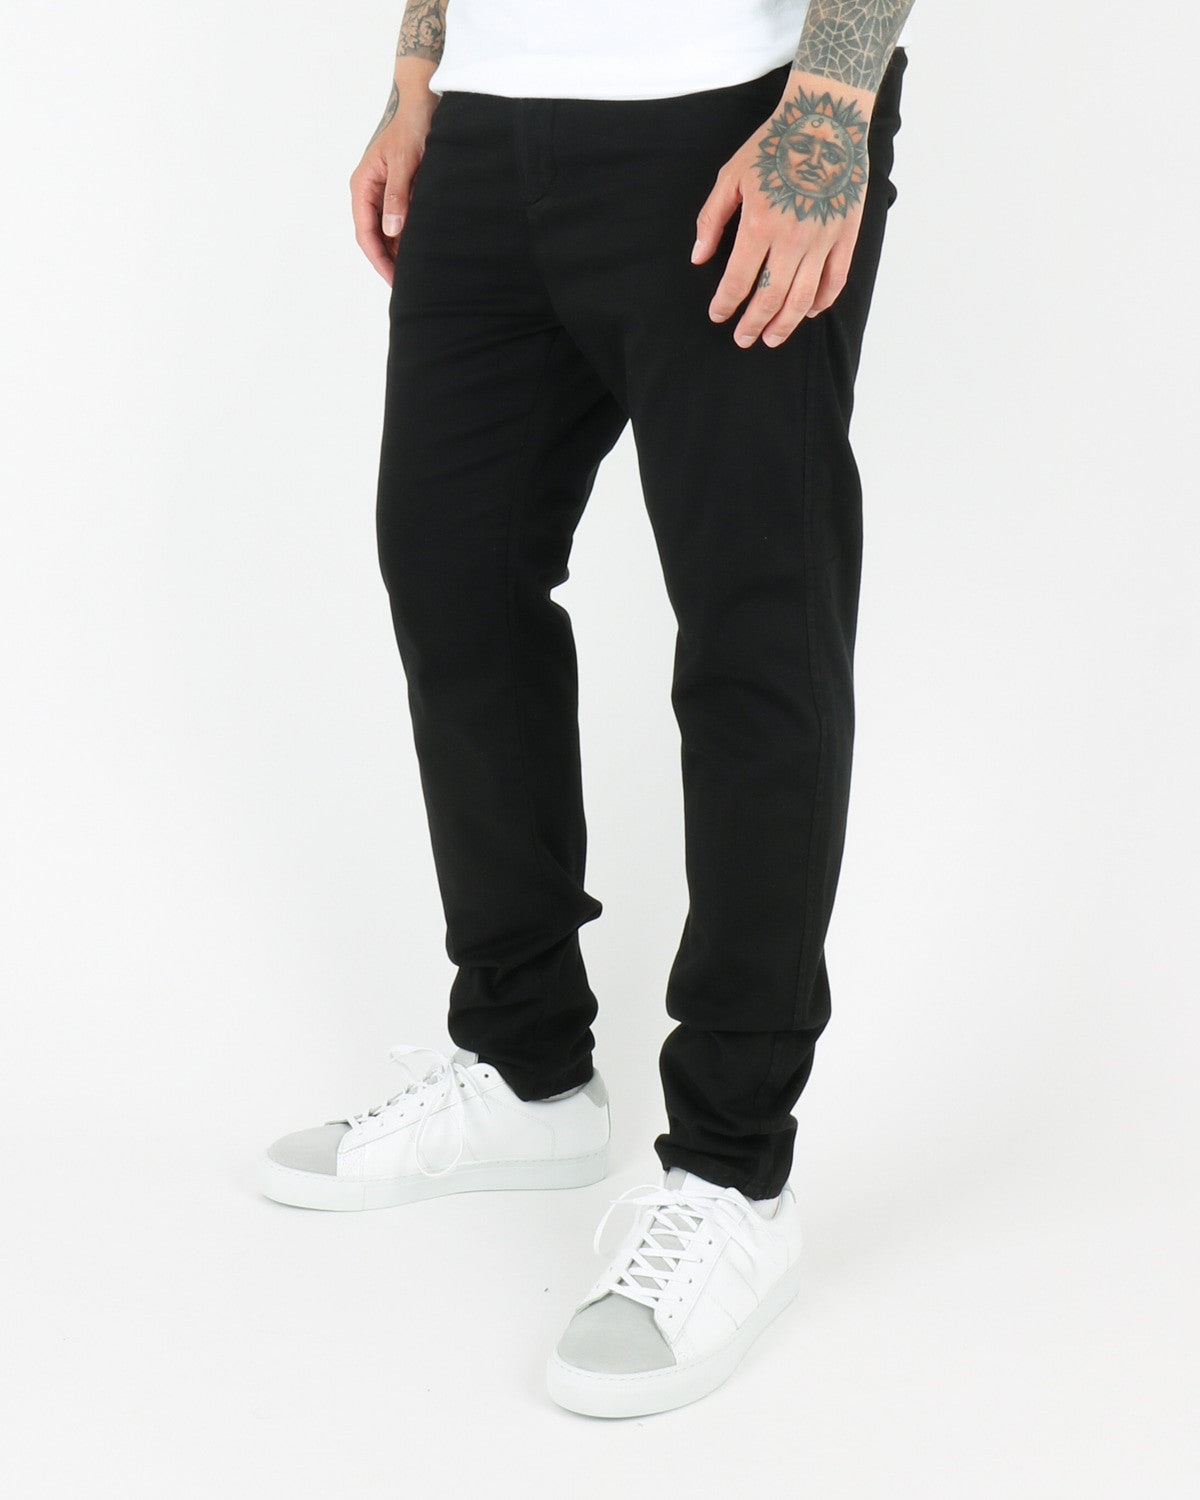 journal clothing_fine pc_pants_black_view_2_3